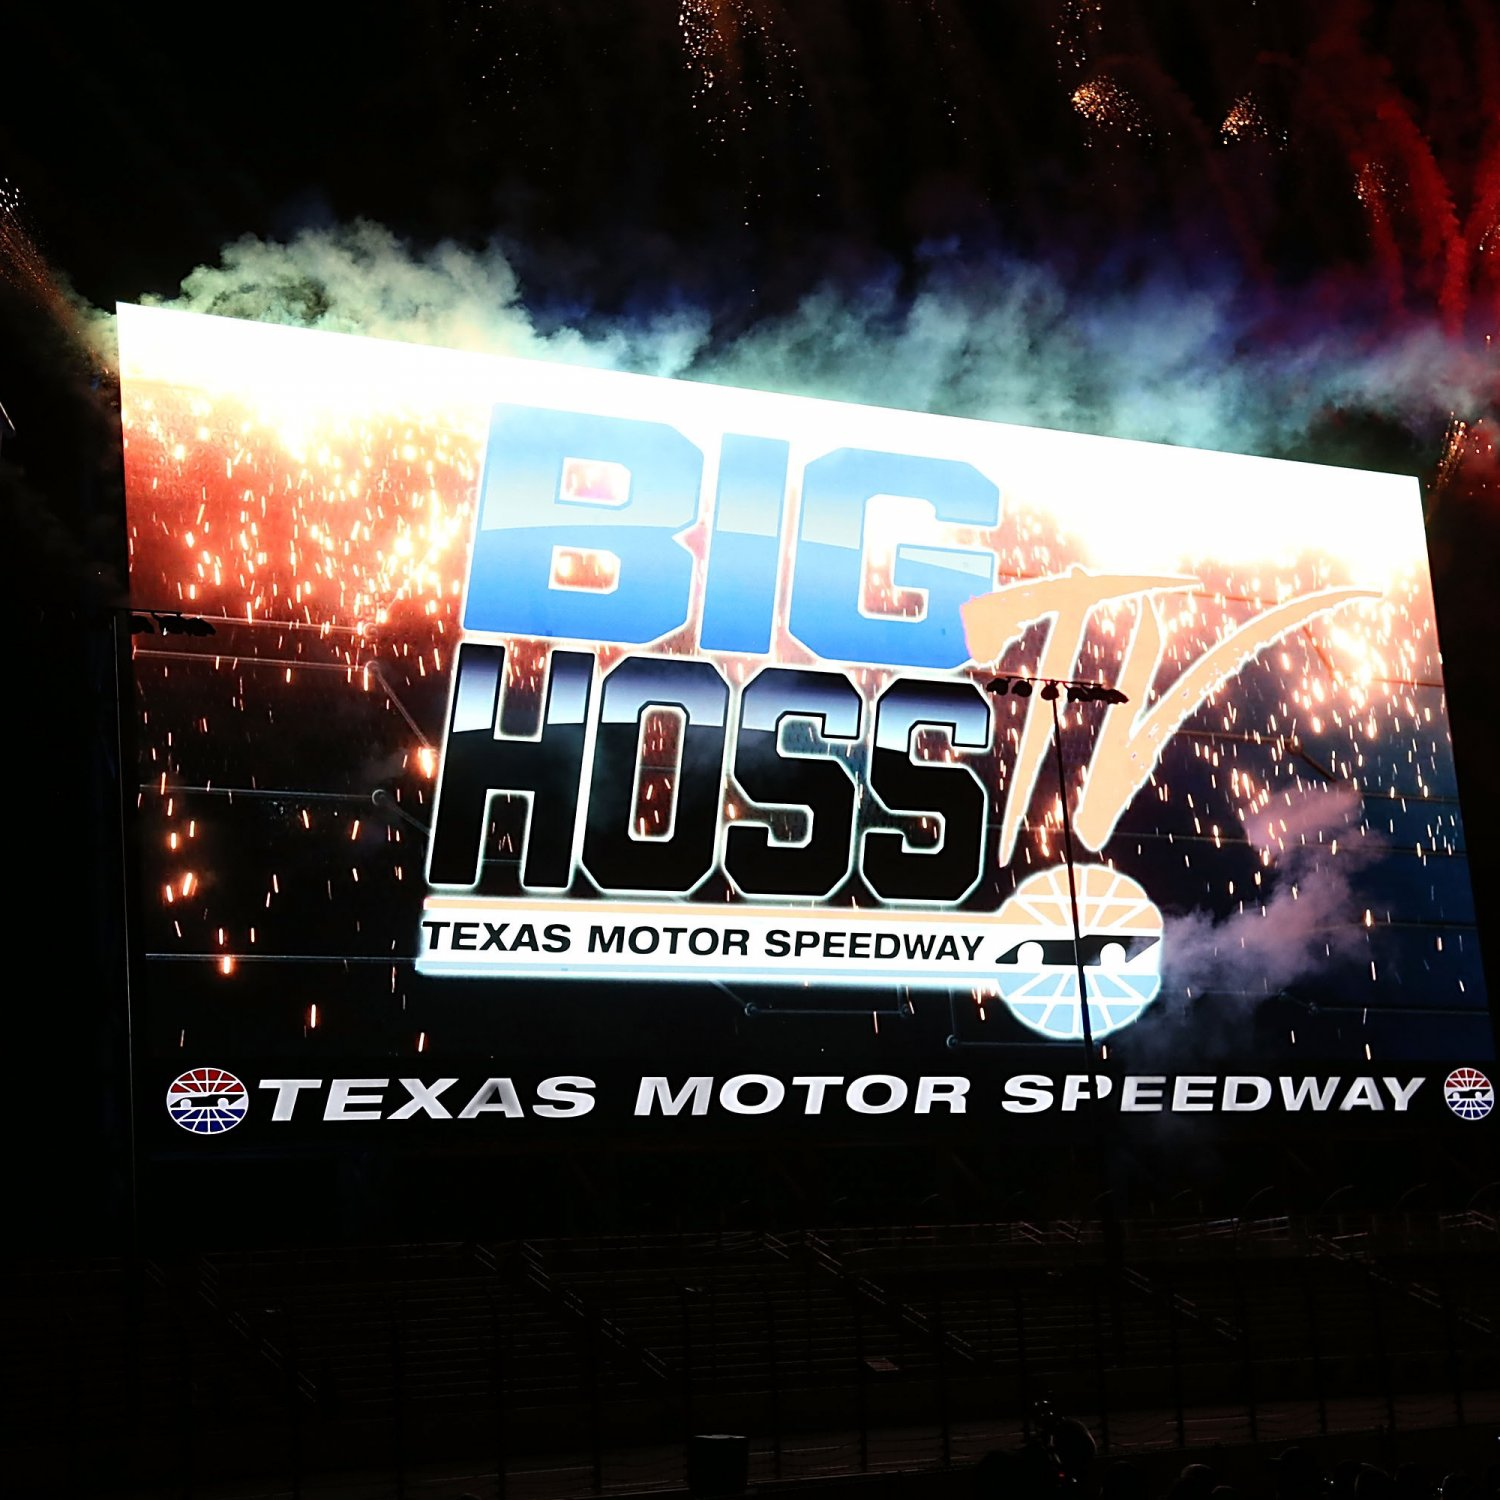 Texas Motor Speedway 39 S 39 Big Hoss 39 Becomes World 39 S Largest